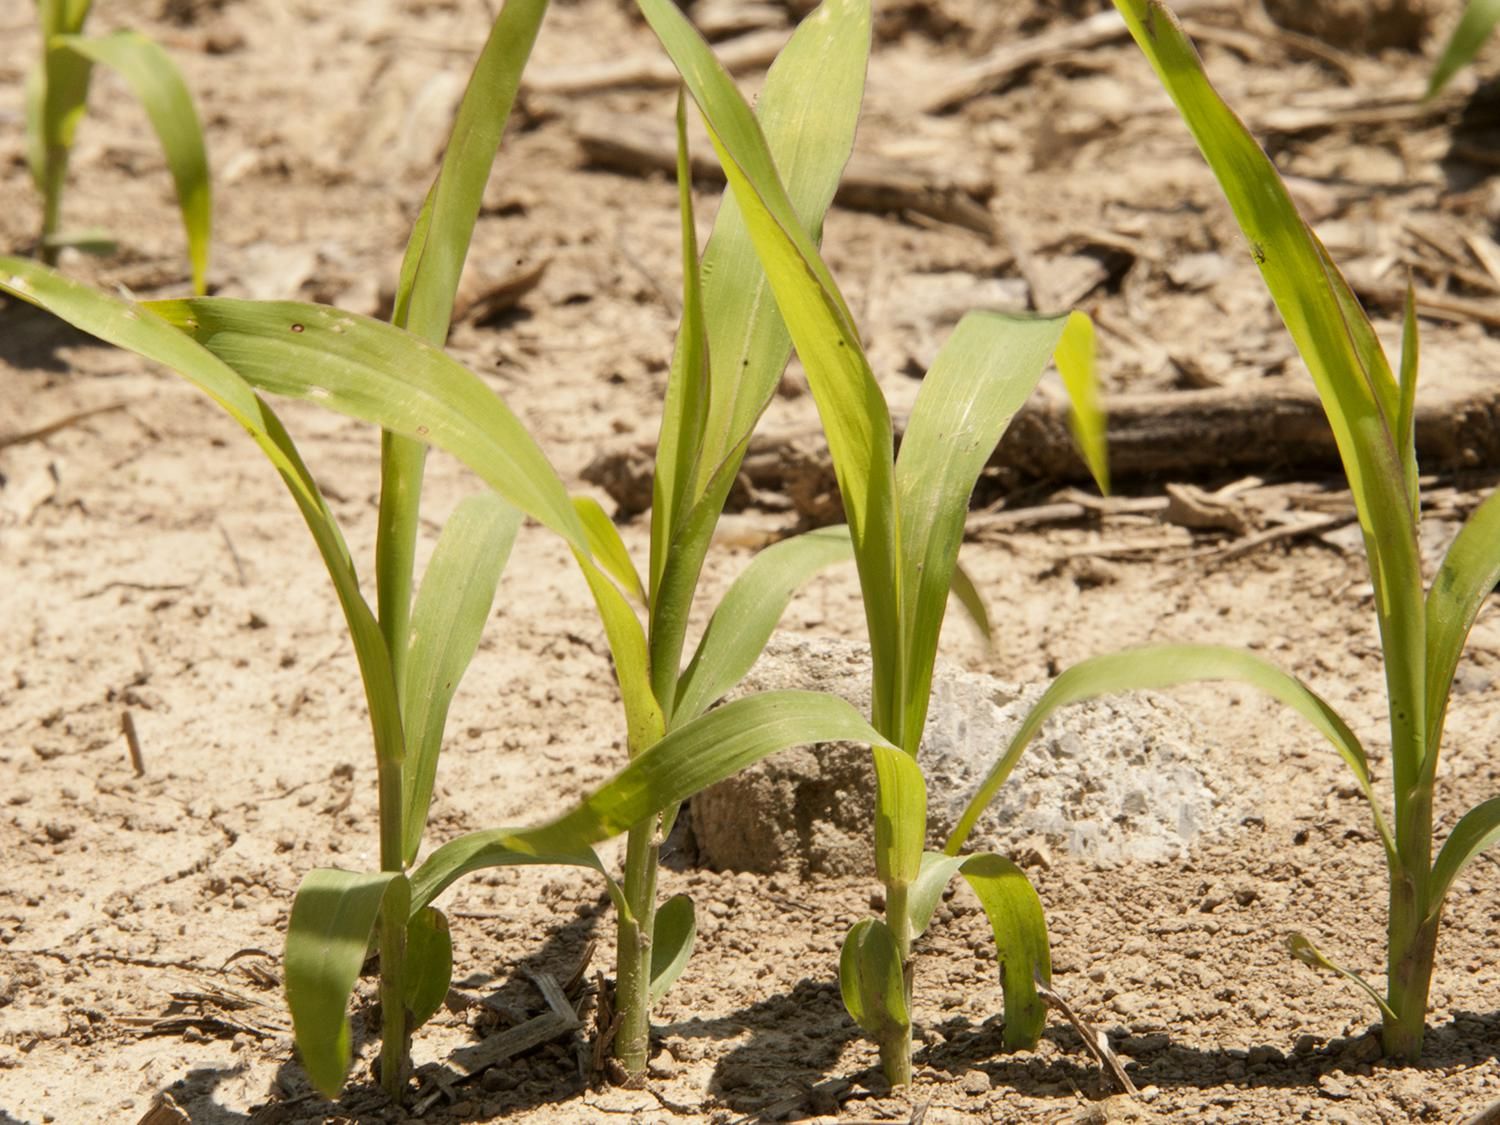 Despite insect challenges last year, grain sorghum acreage in Mississippi is expected to hold steady. This young sorghum was photographed in the Mississippi Delta April 30, 2015. (Photo by MSU Ag Communications/Kat Lawrence)